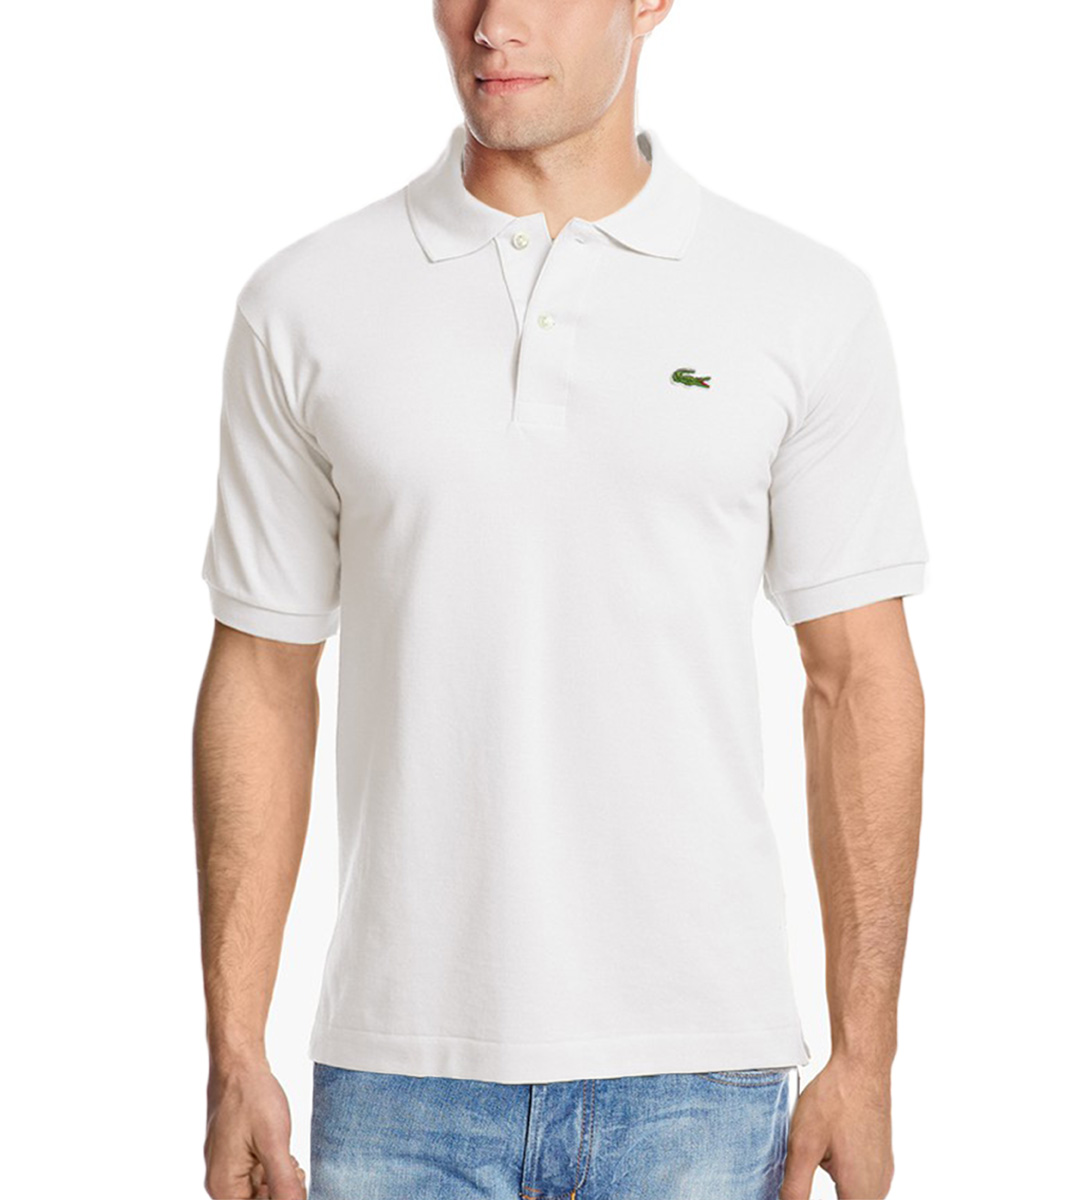 Lacoste polo shirts sale ebay for Lacoste polo shirts ebay